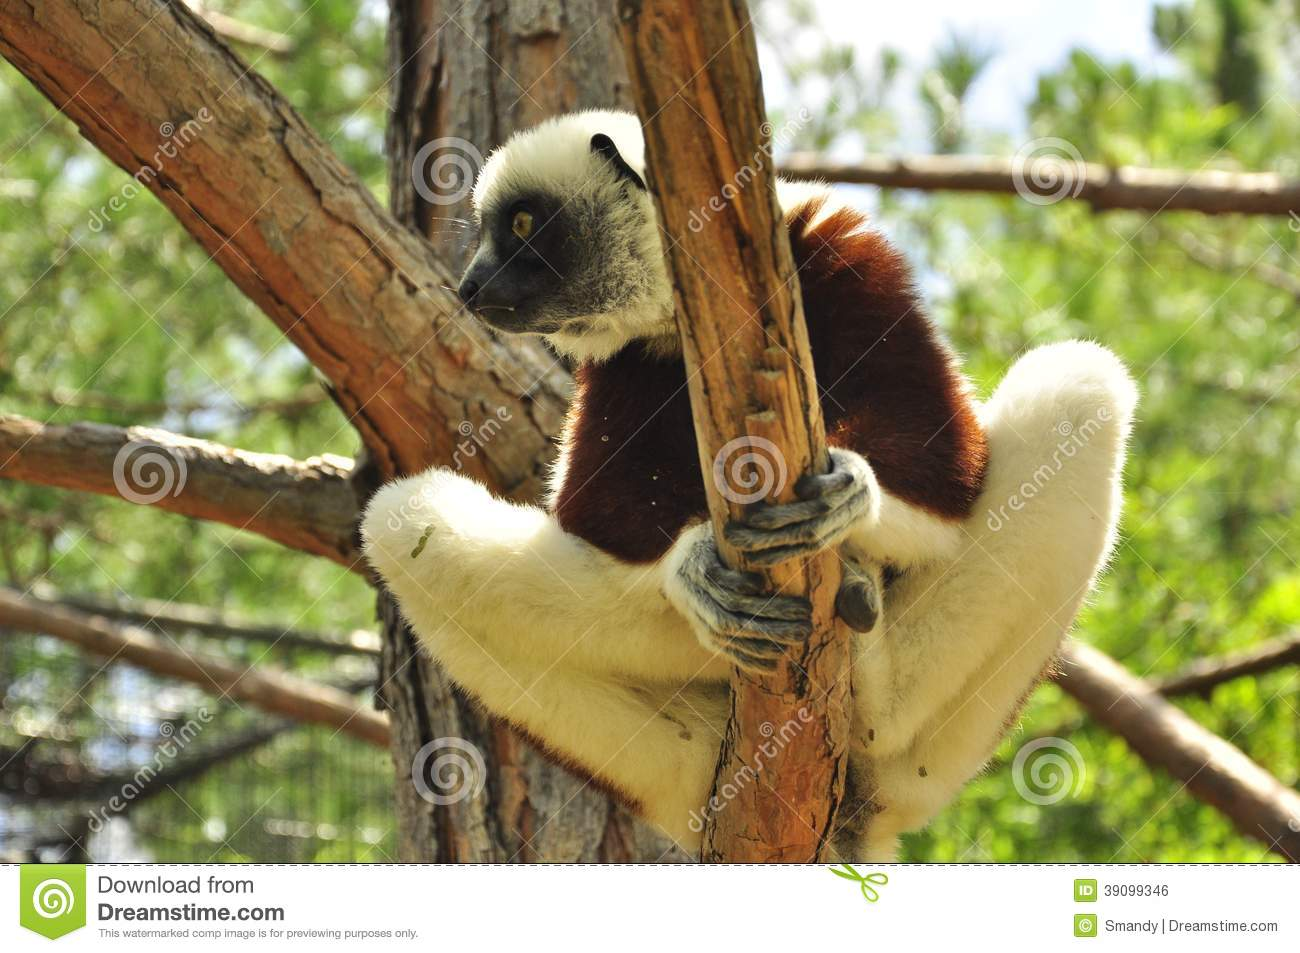 Lemur Of Madagascar In A Tree Endemic Species Stock Photo